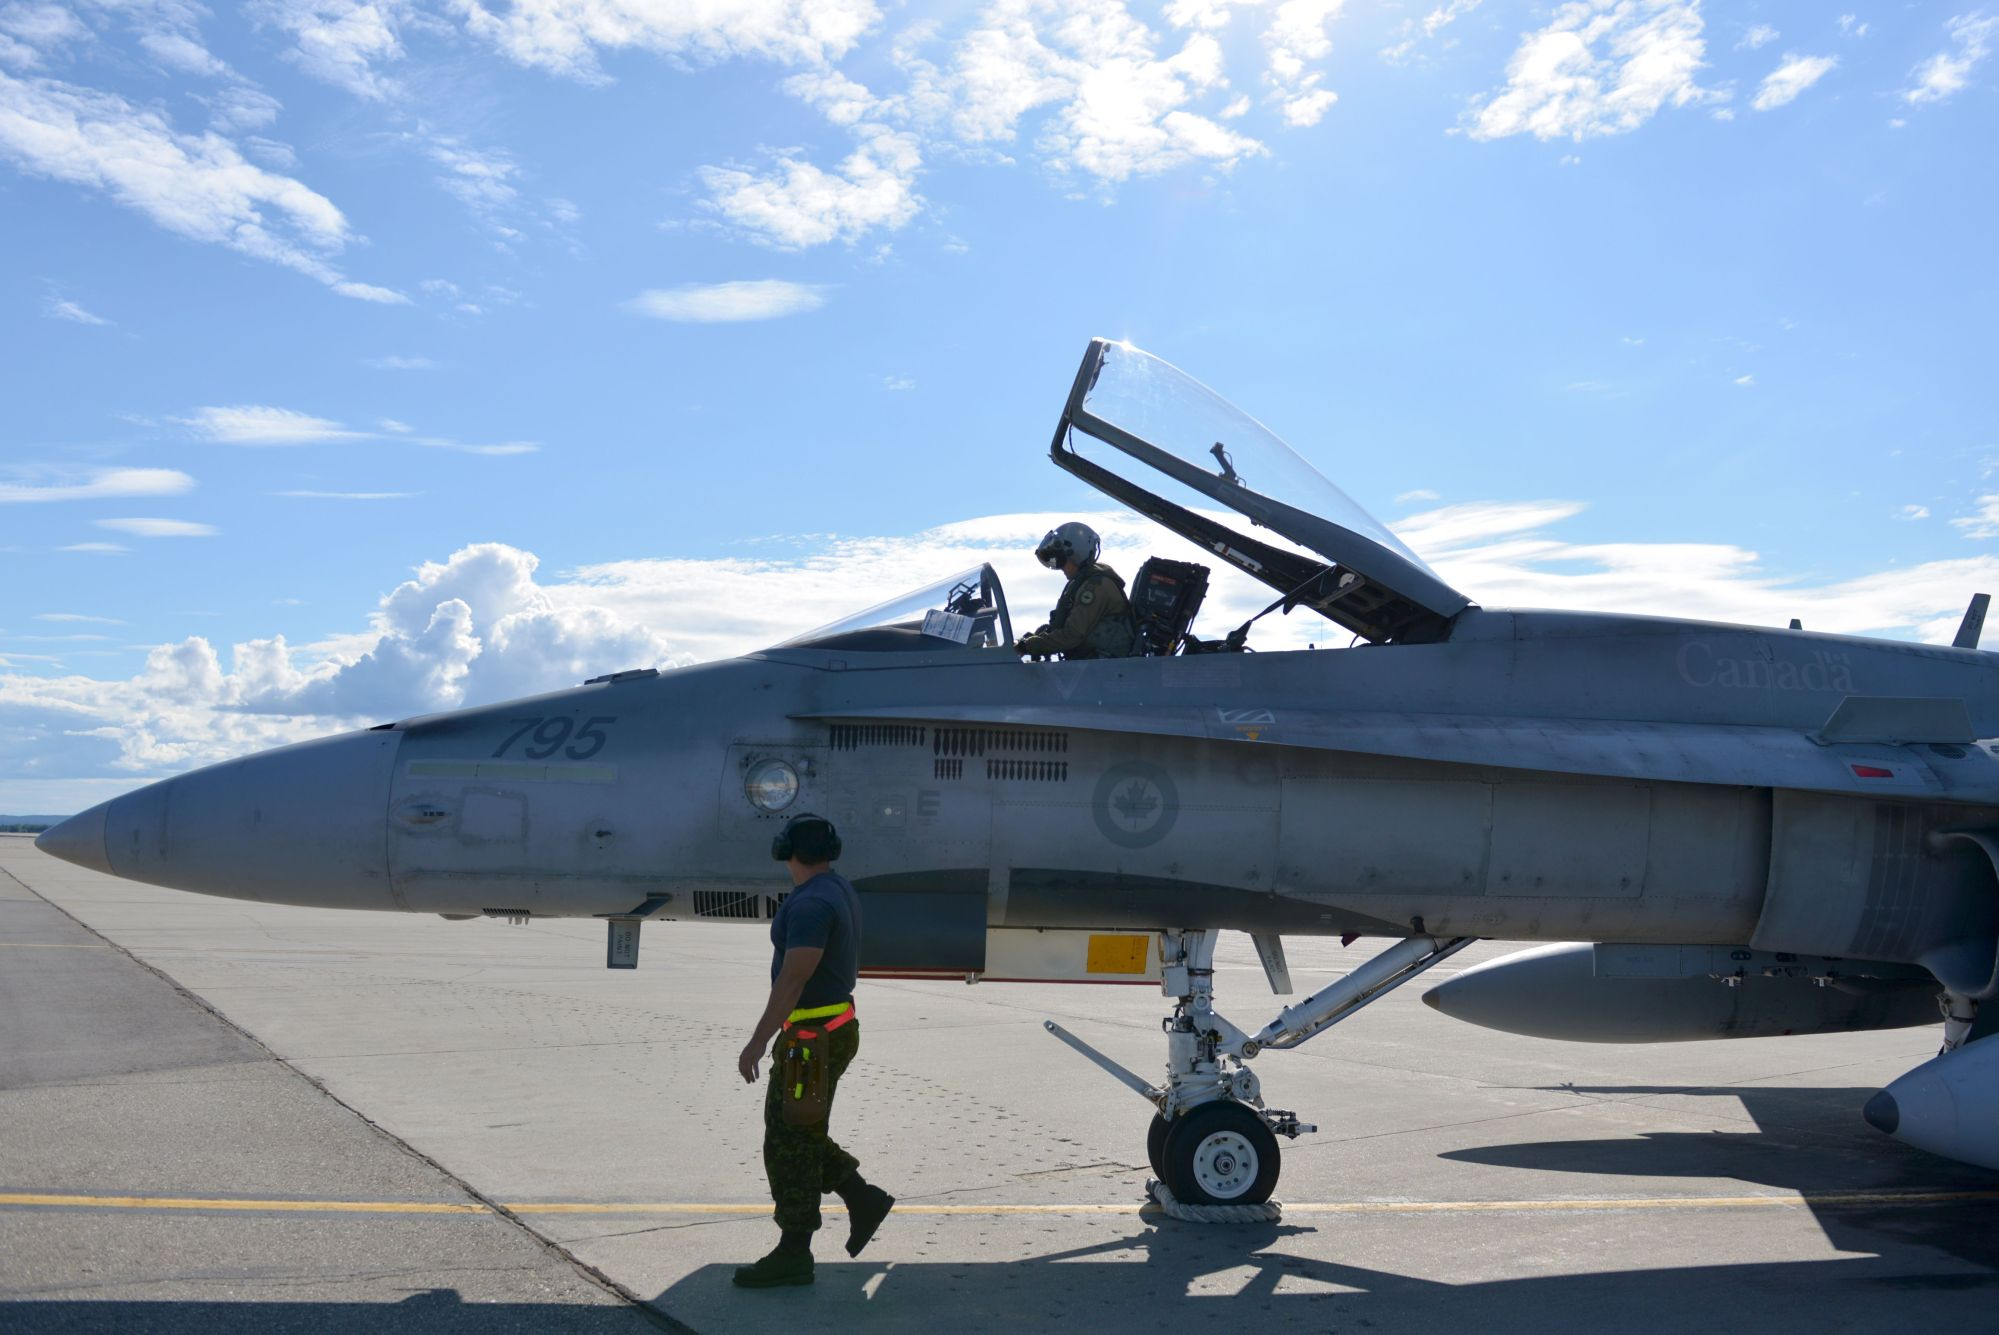 hight resolution of thanks to some questionable planning canada will fly the same f 18 jets for 50 years